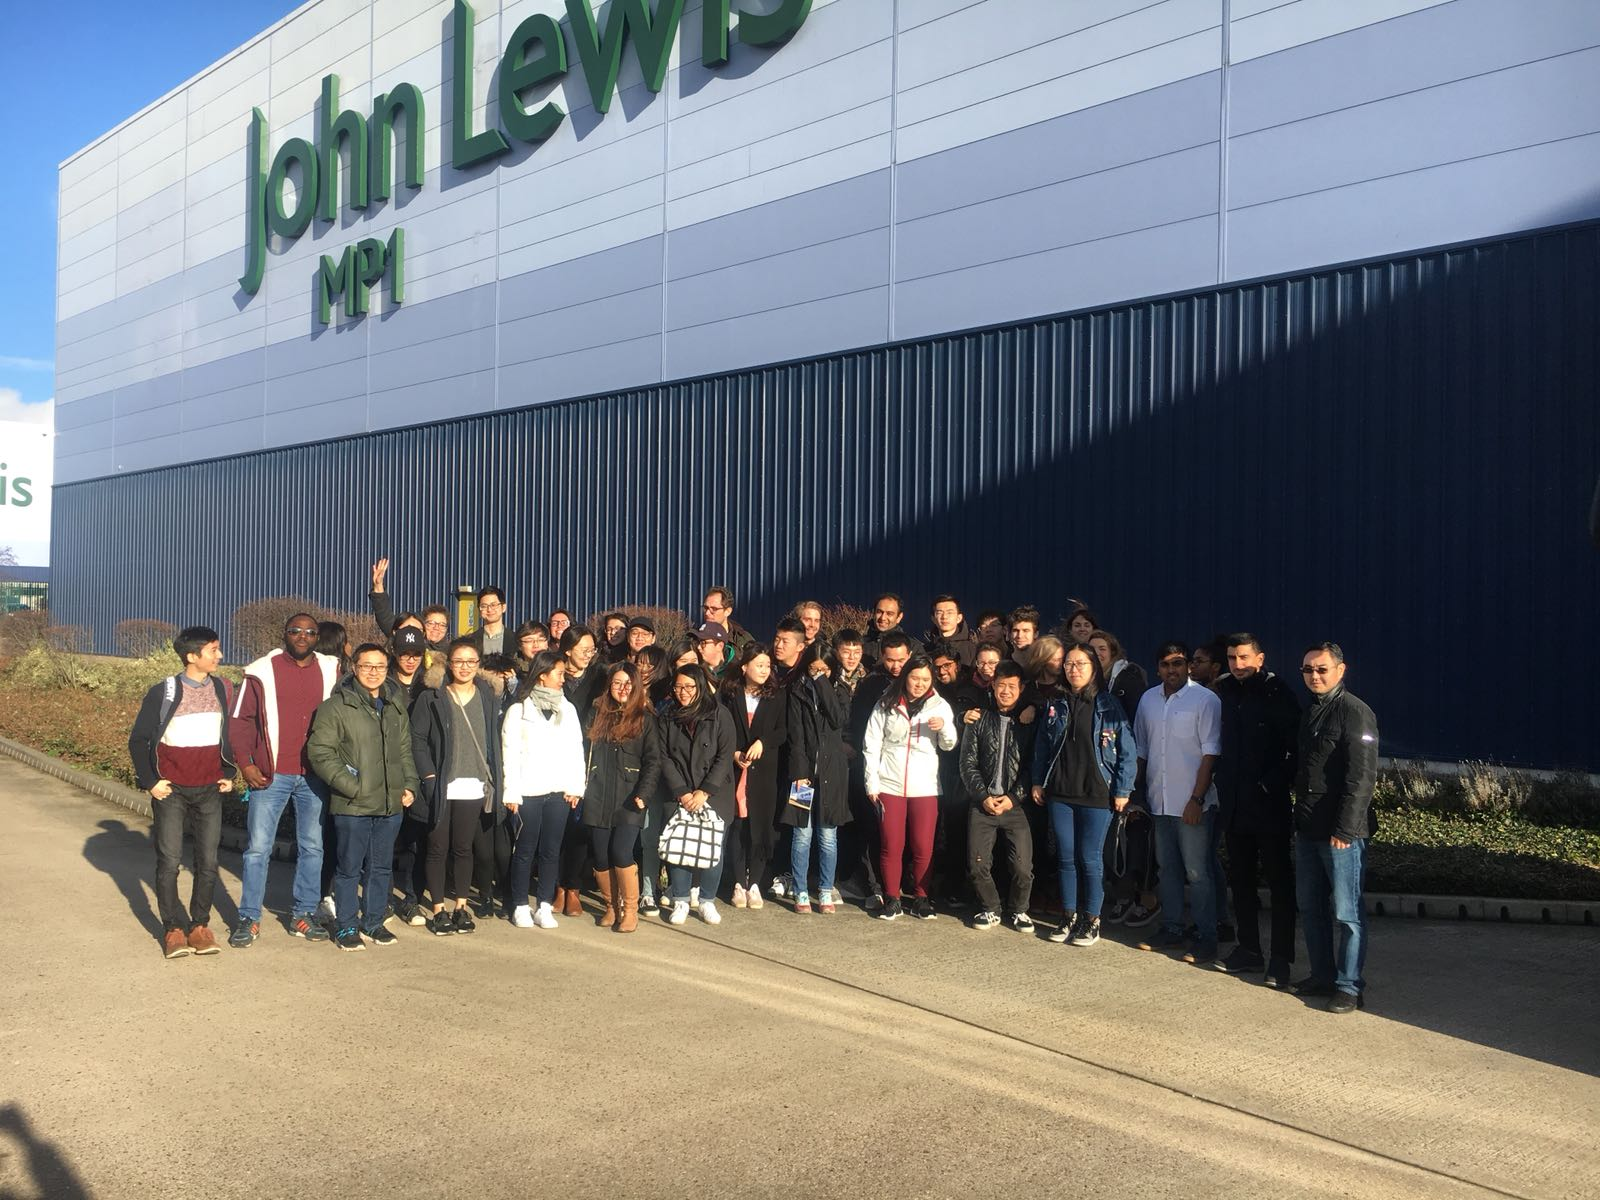 John Lewis warehouse visit group photo